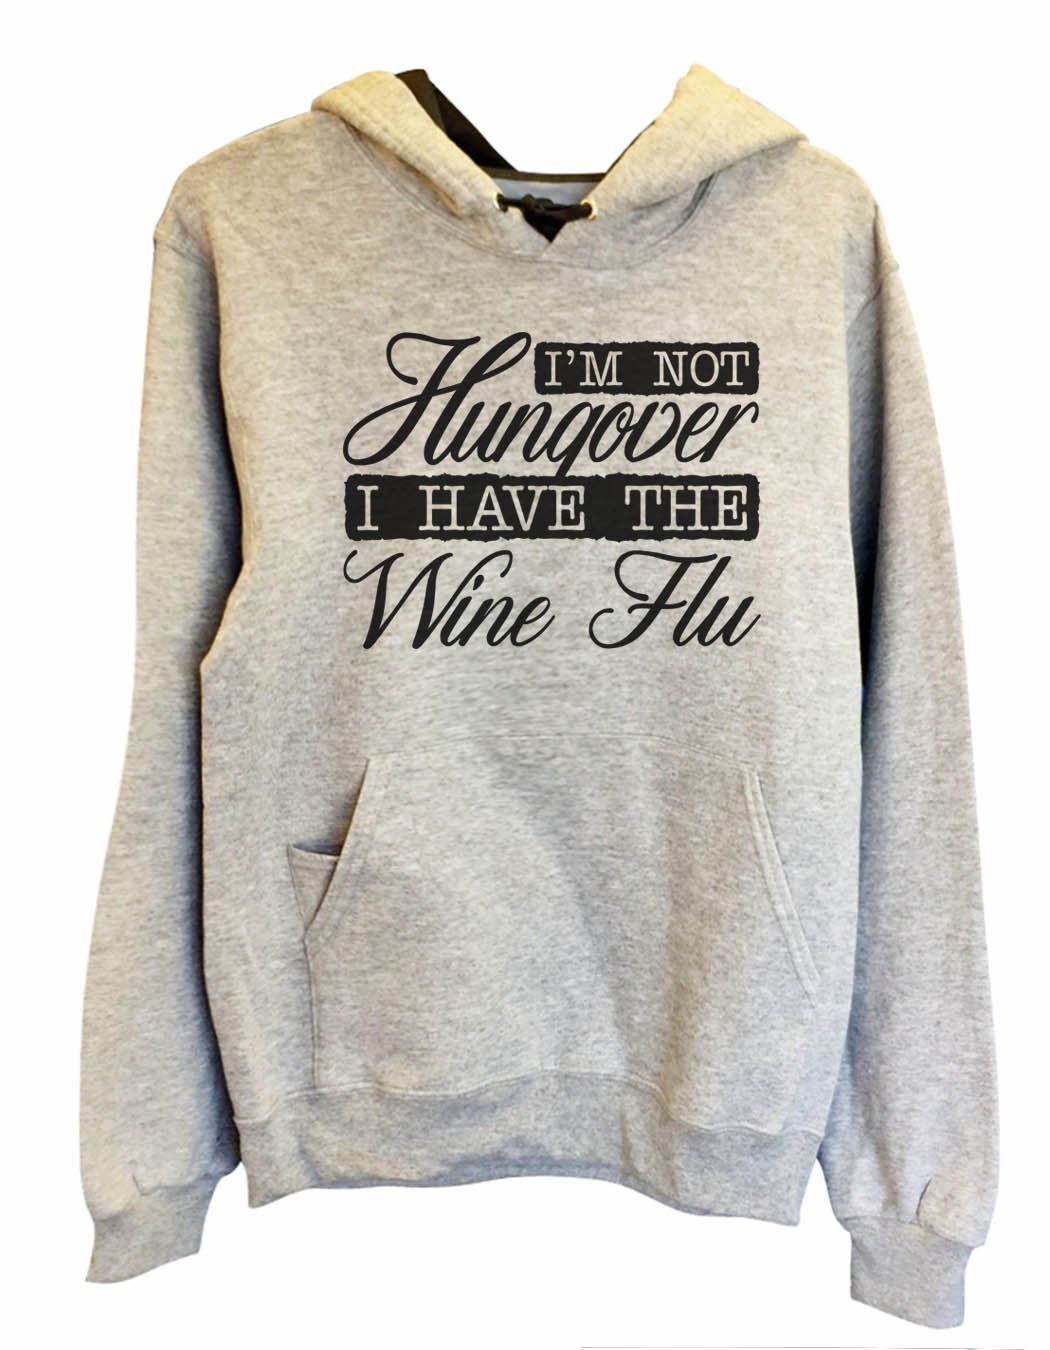 UNISEX HOODIE - I'm Not Hungover I Have The Wine Flu - FUNNY MENS AND WOMENS HOODED SWEATSHIRTS - 2139 Funny Shirt Small / Heather Grey